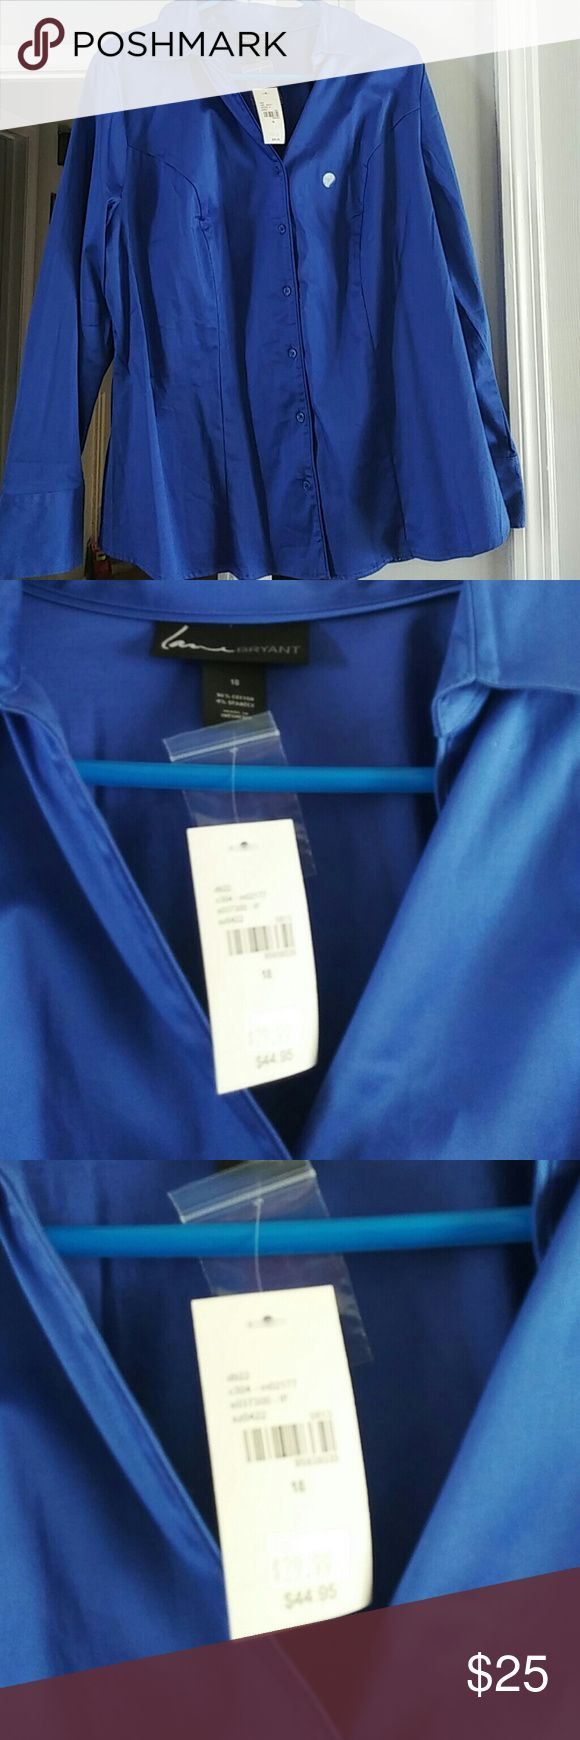 Plus size lane Bryant shirt Blue button down shirt. I have the brown cami that goes with this color in my closet. Lane Bryant Tops Button Down Shirts